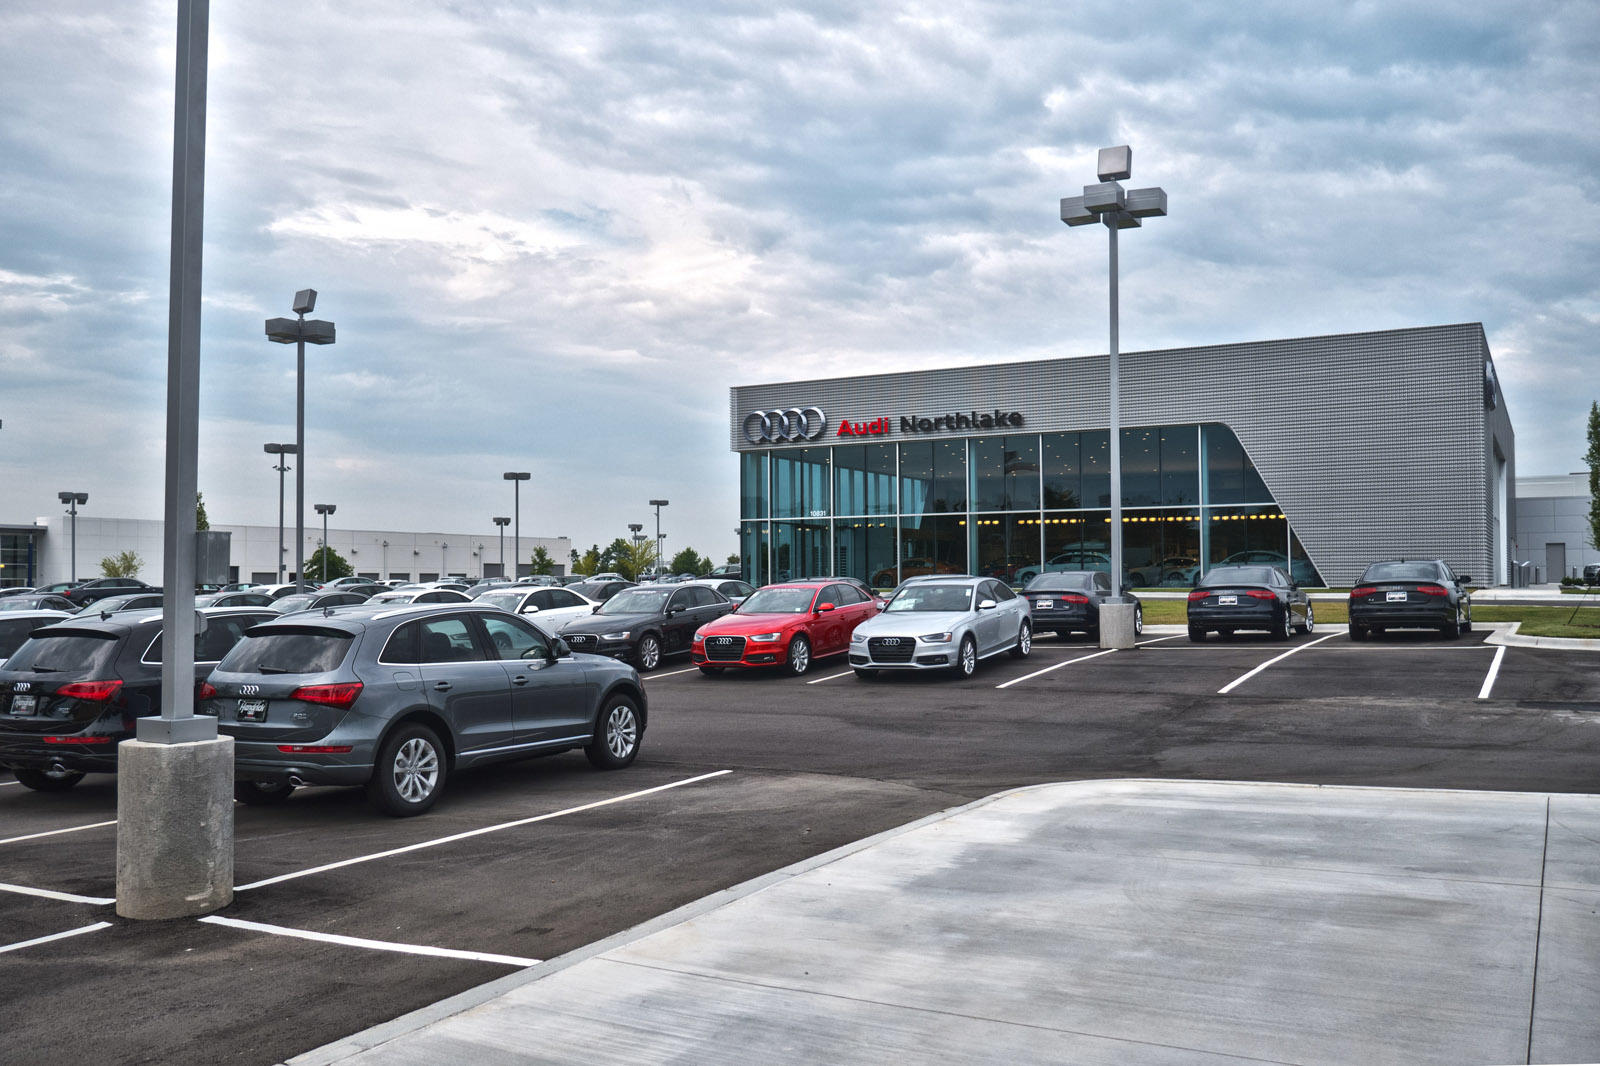 Audi northlake in charlotte nc autos motor vehicles for Mercedes benz south blvd charlotte nc